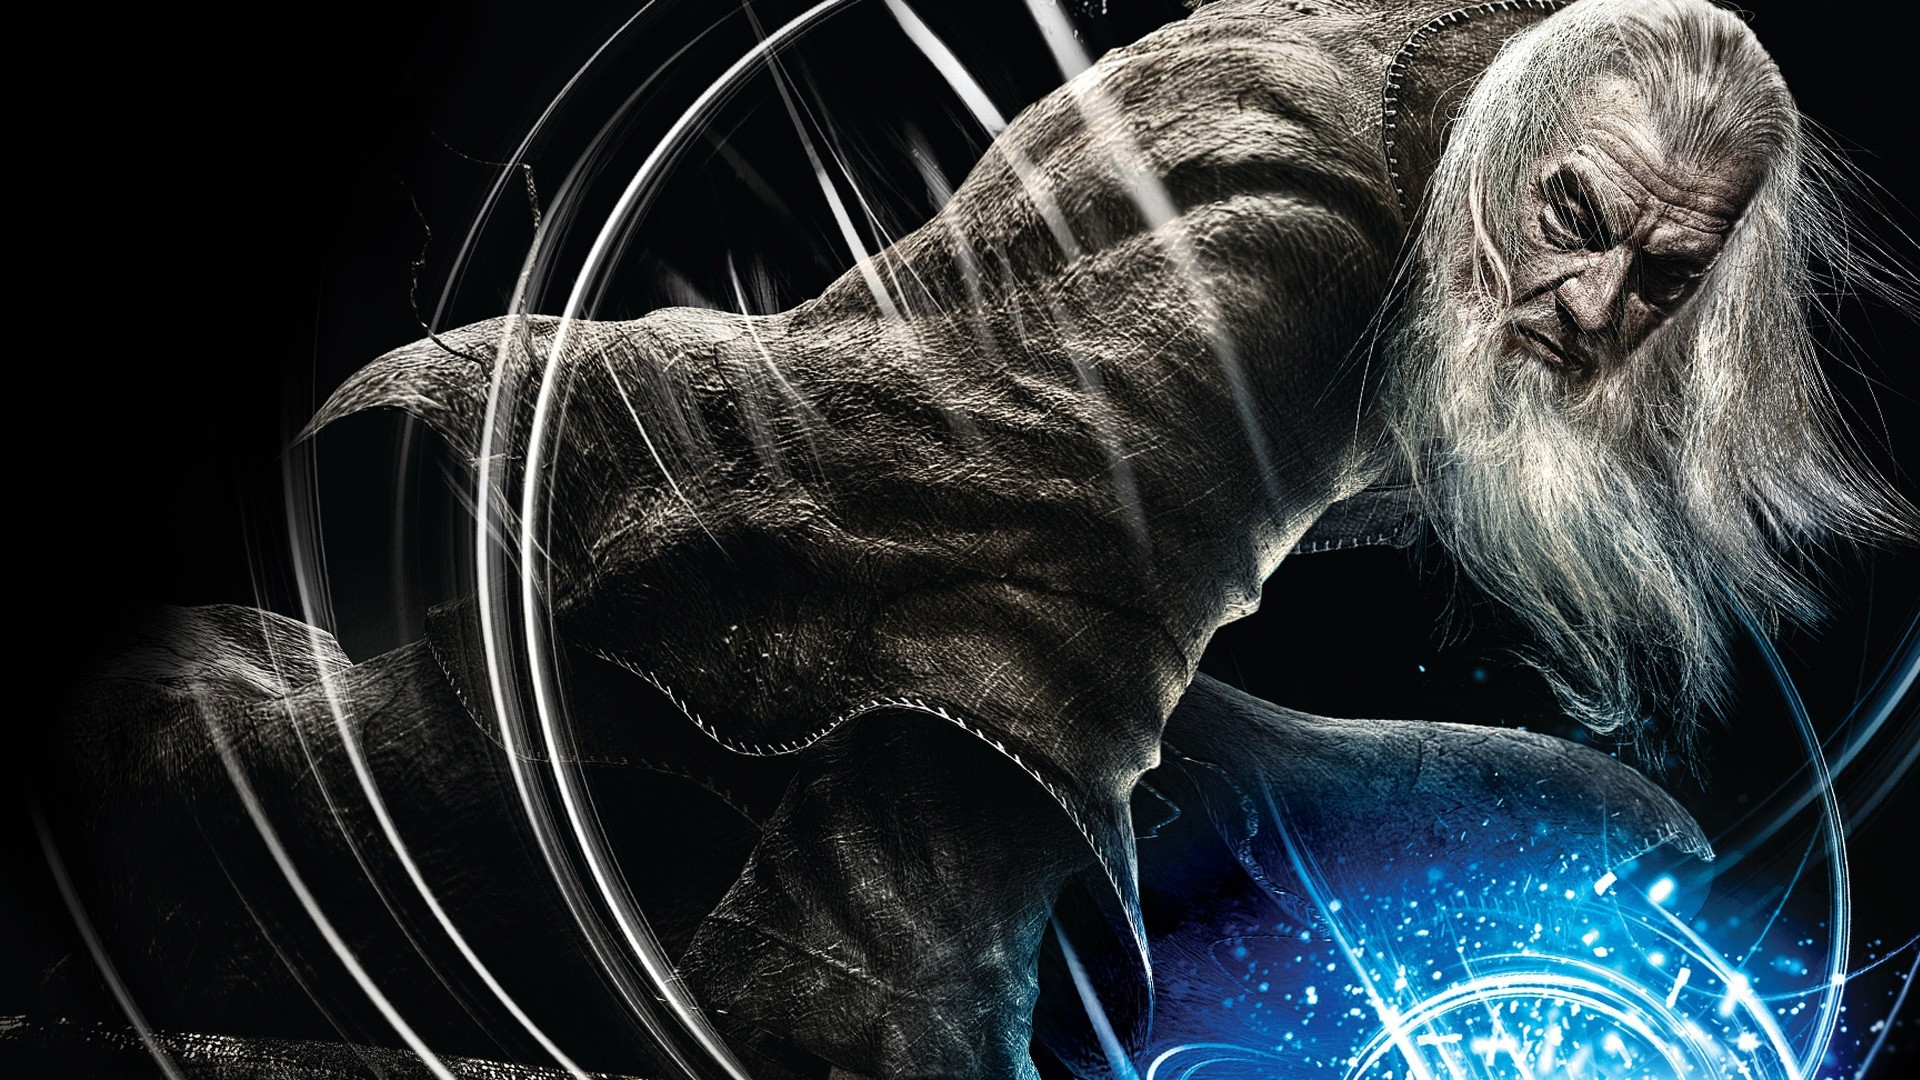 Wallpaper the lord of the rings, guardians of middle-earth,  gandalf,